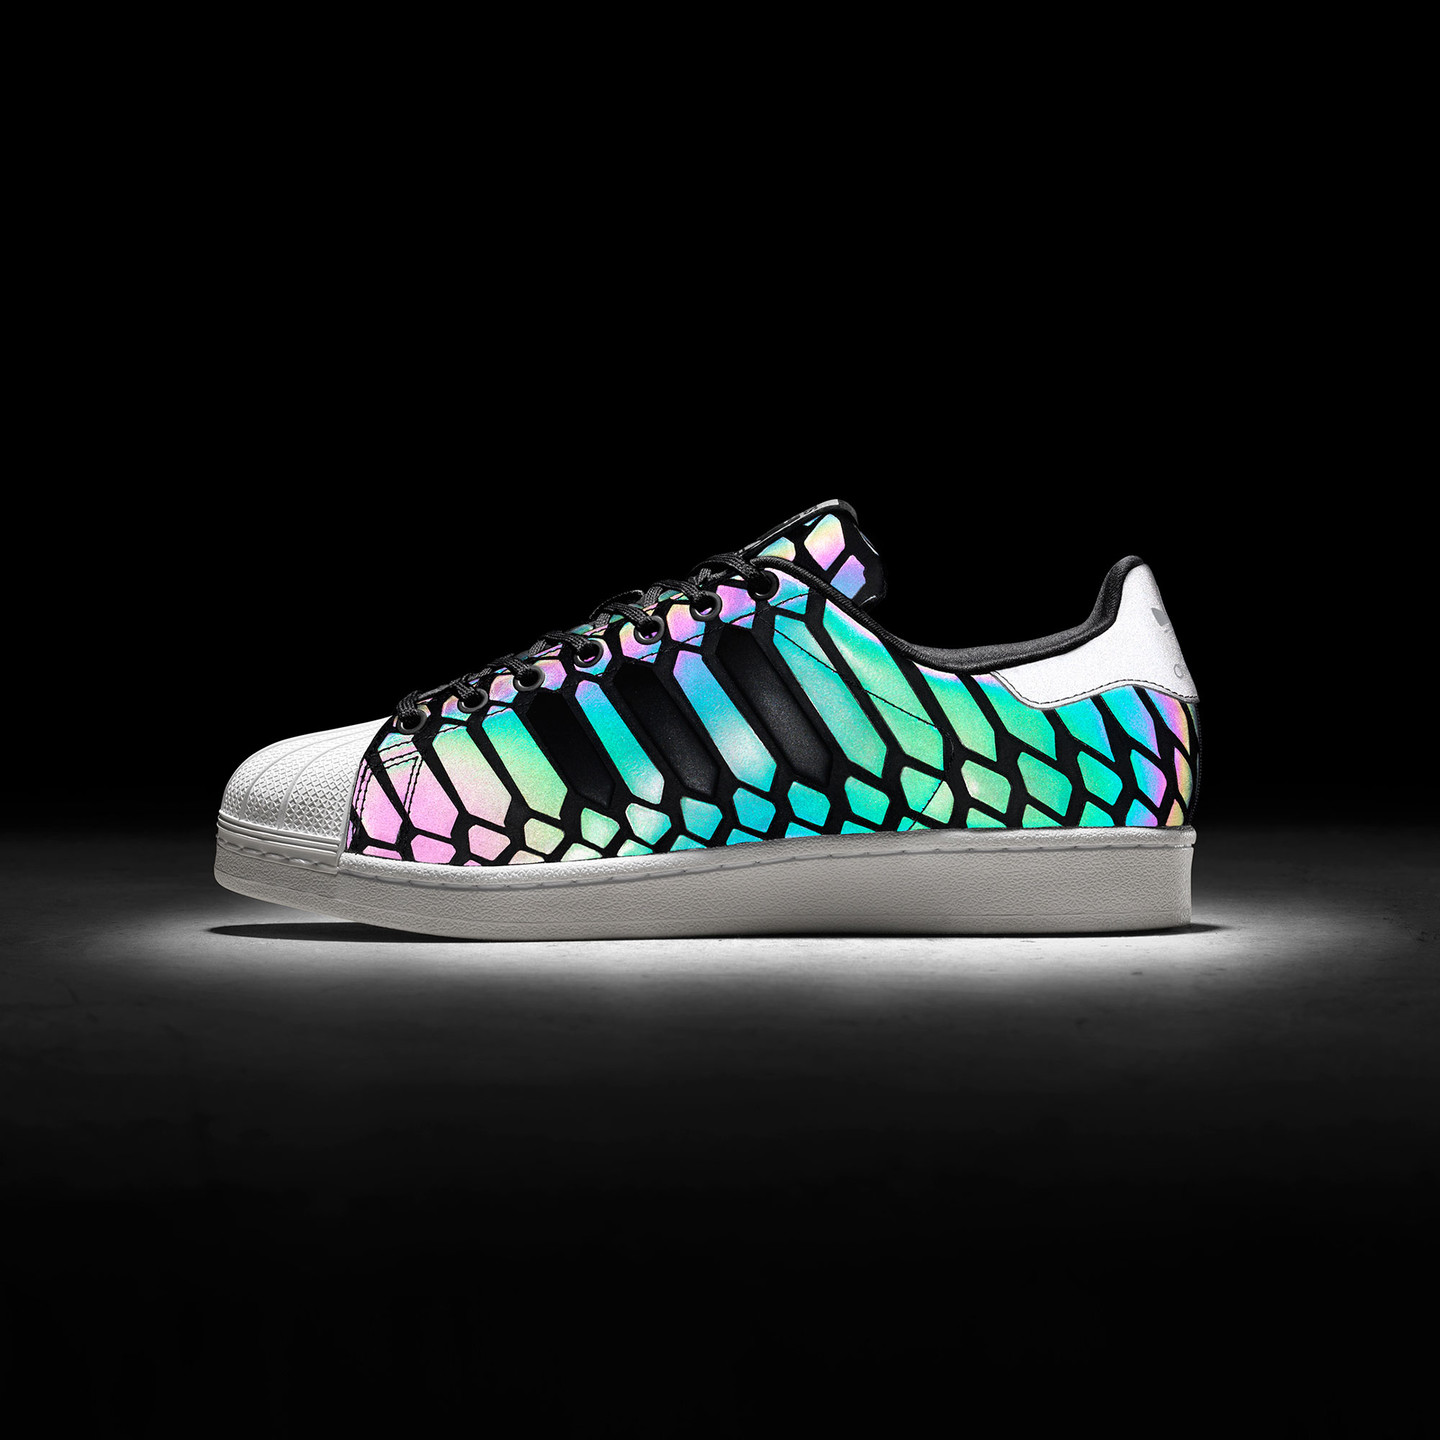 Adidas Superstar Xeno Pack Cblack / Supcol / Ftwwht D69366-43.33